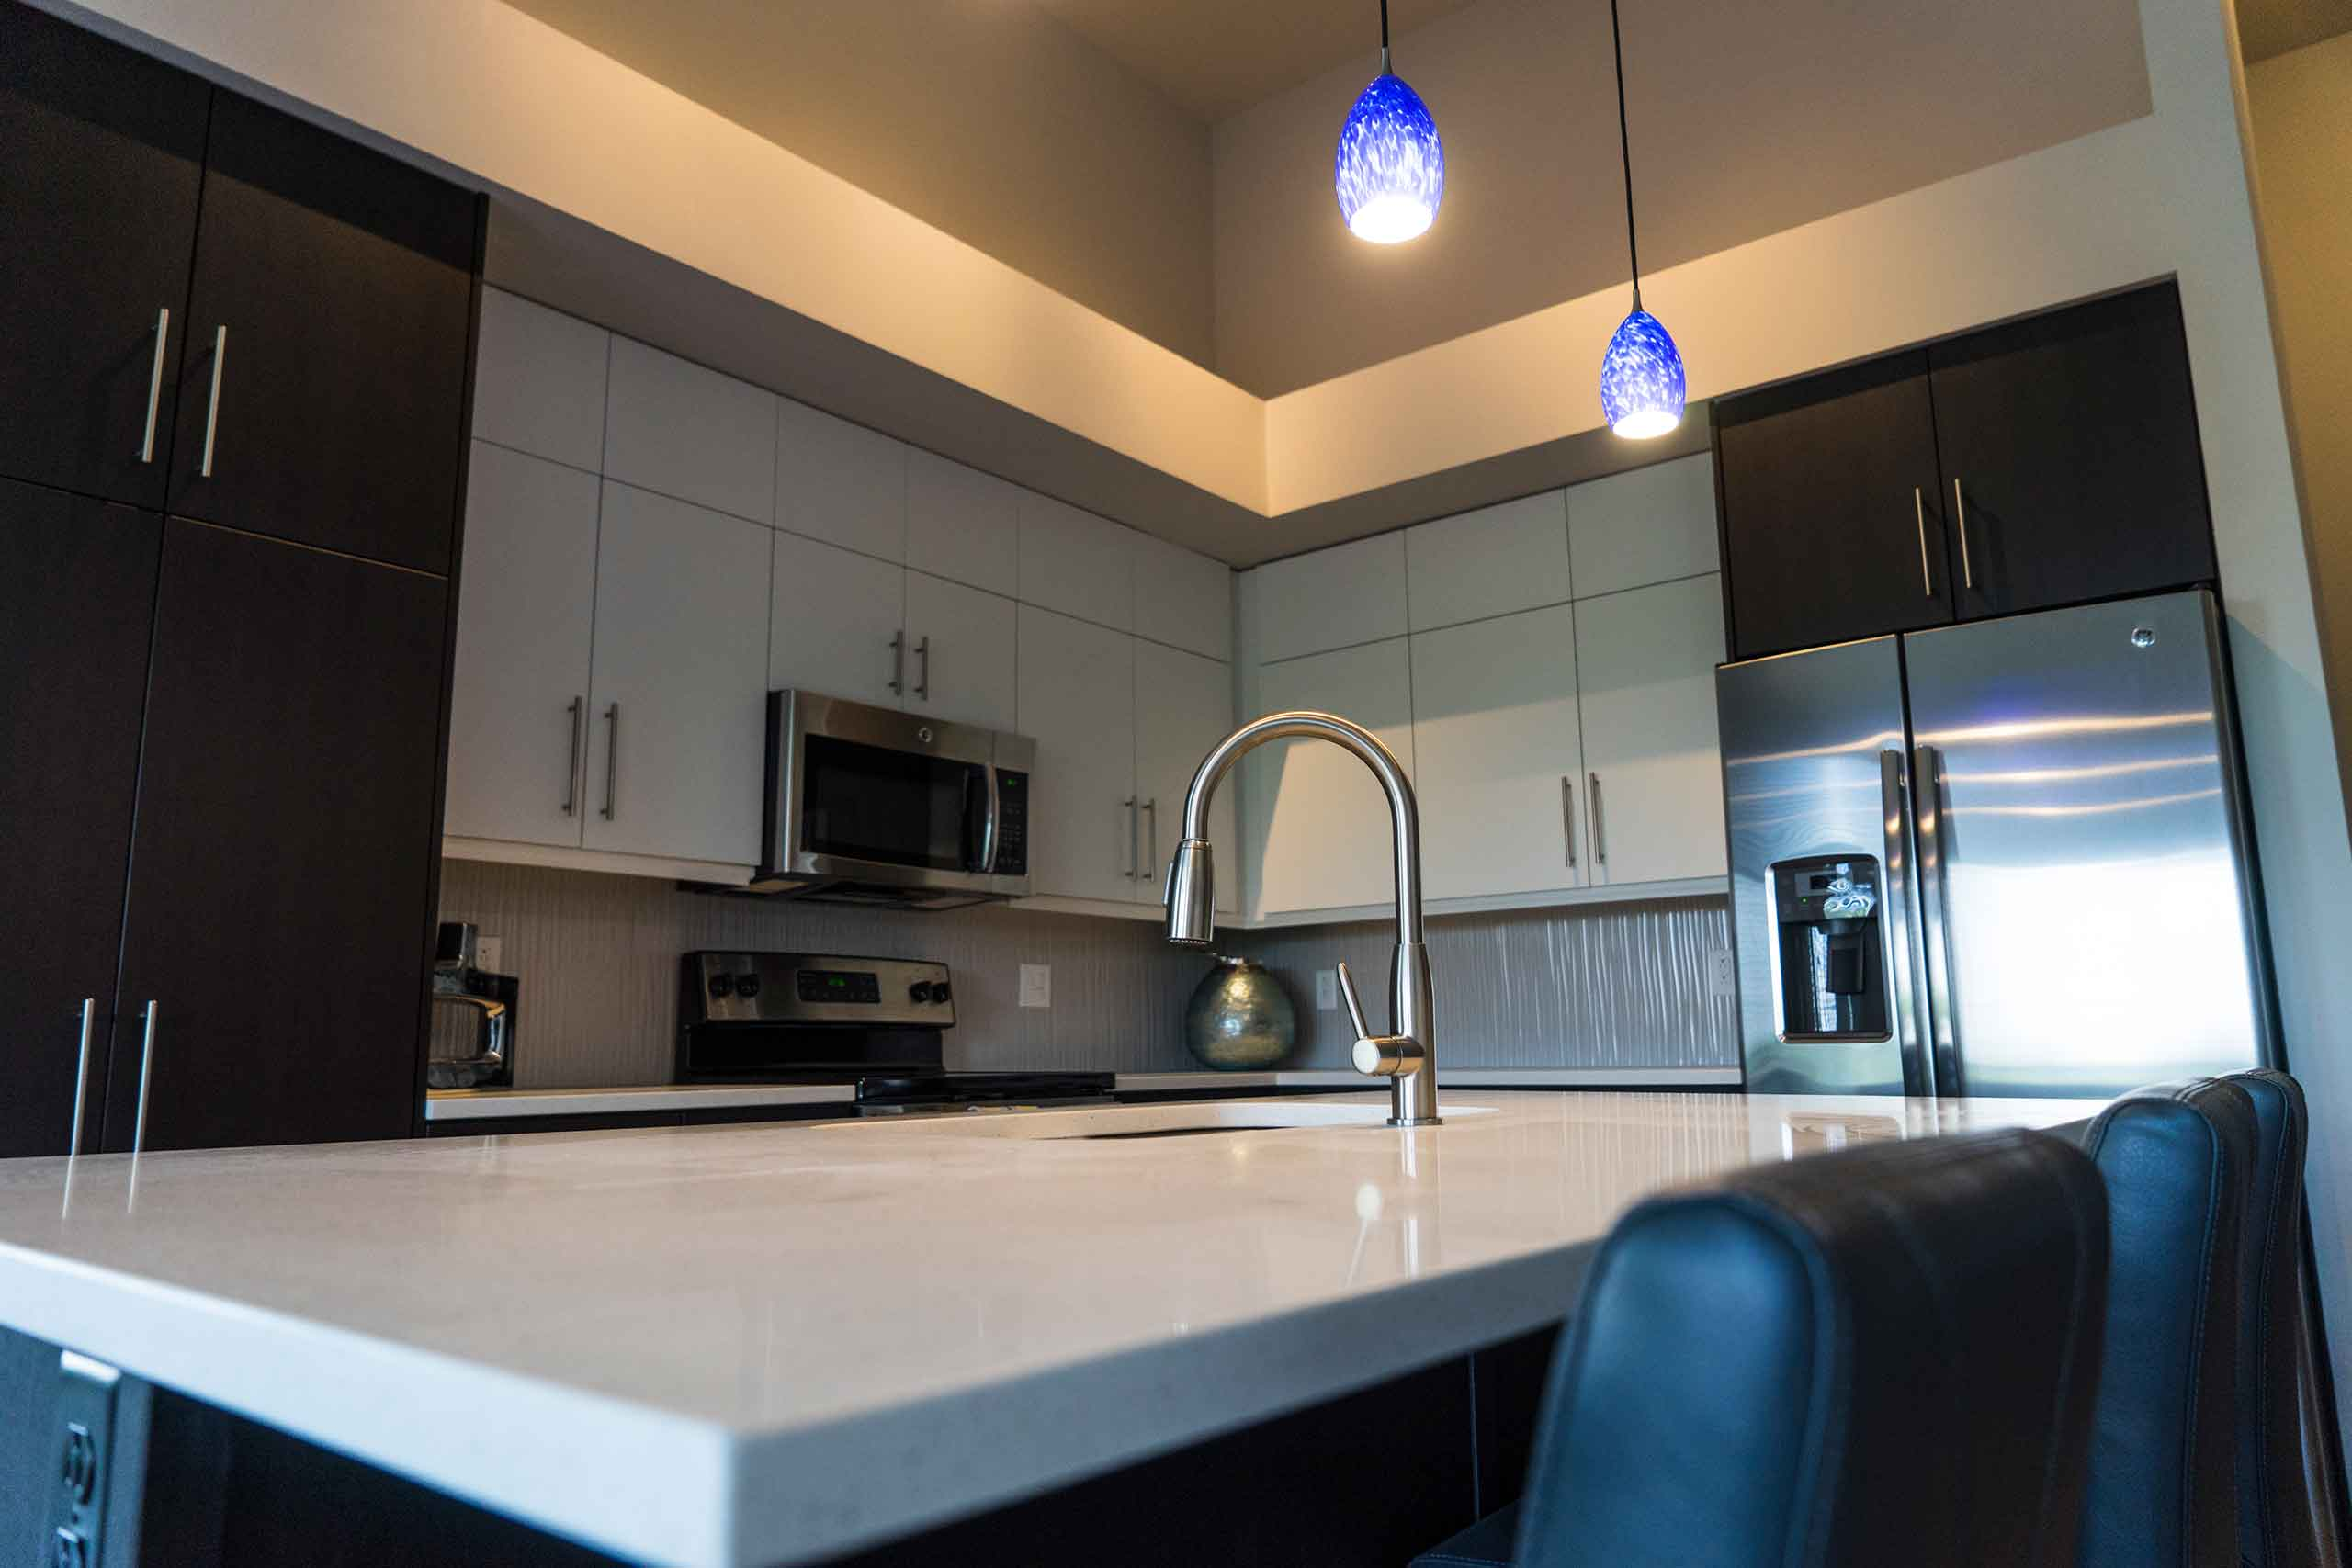 InterUrban-Lofts-Kitchen-2